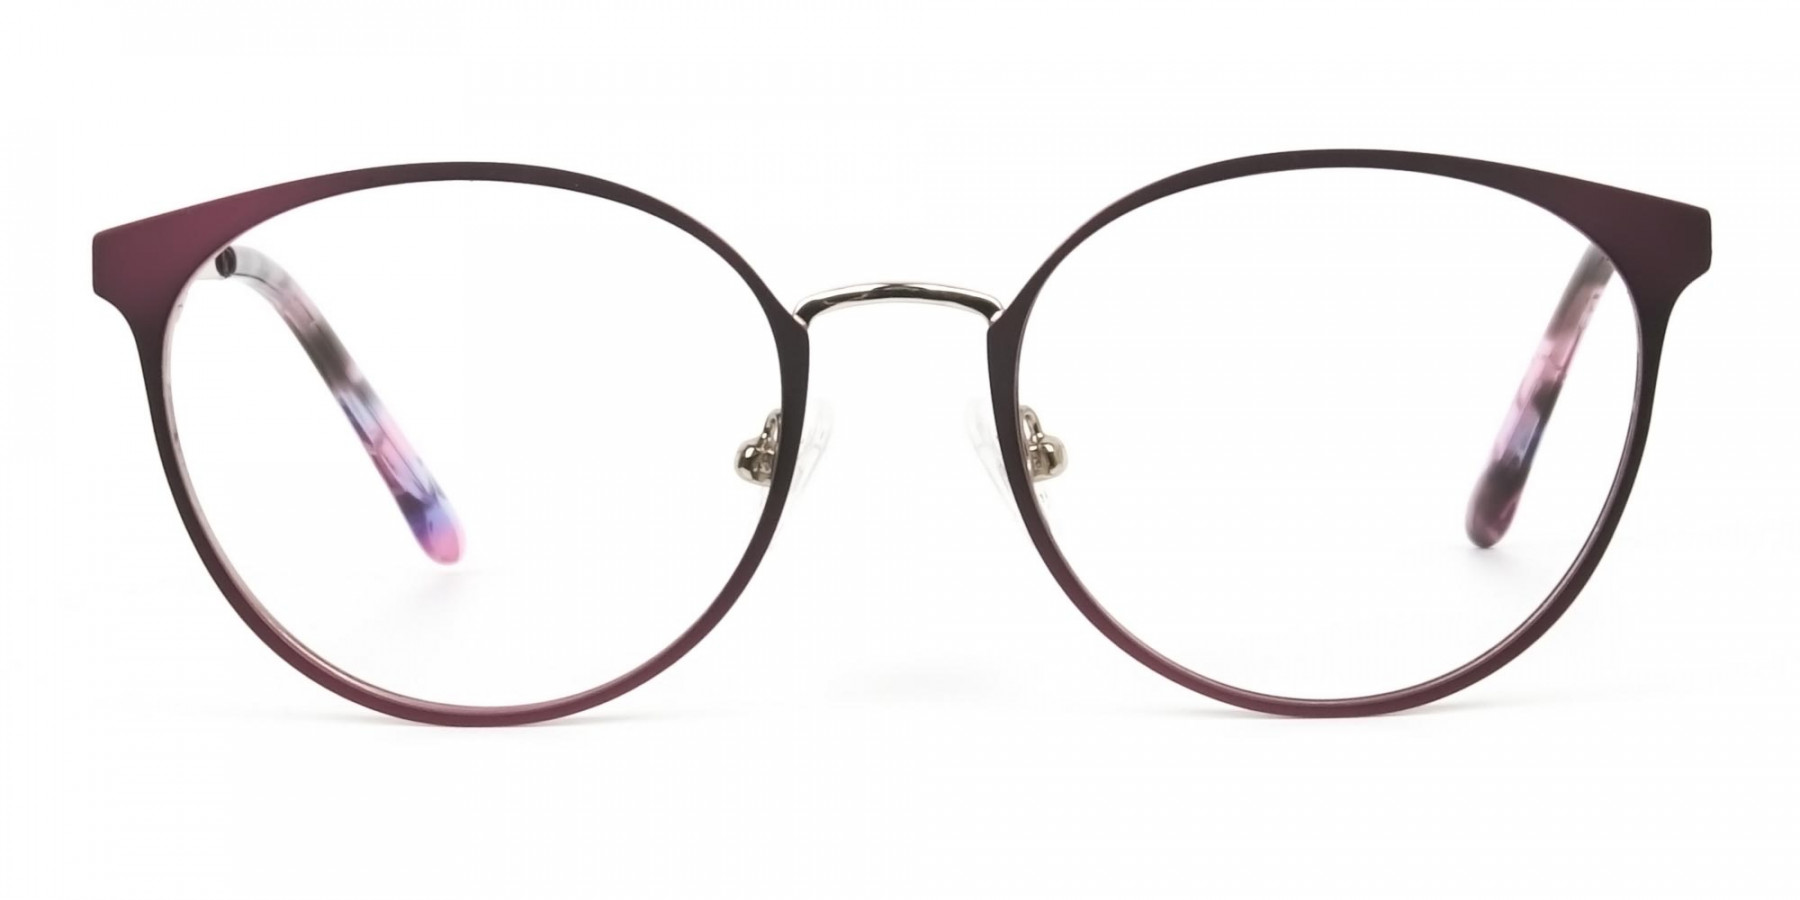 Silver Burgundy Red Spectacle Frames in Round  - 1